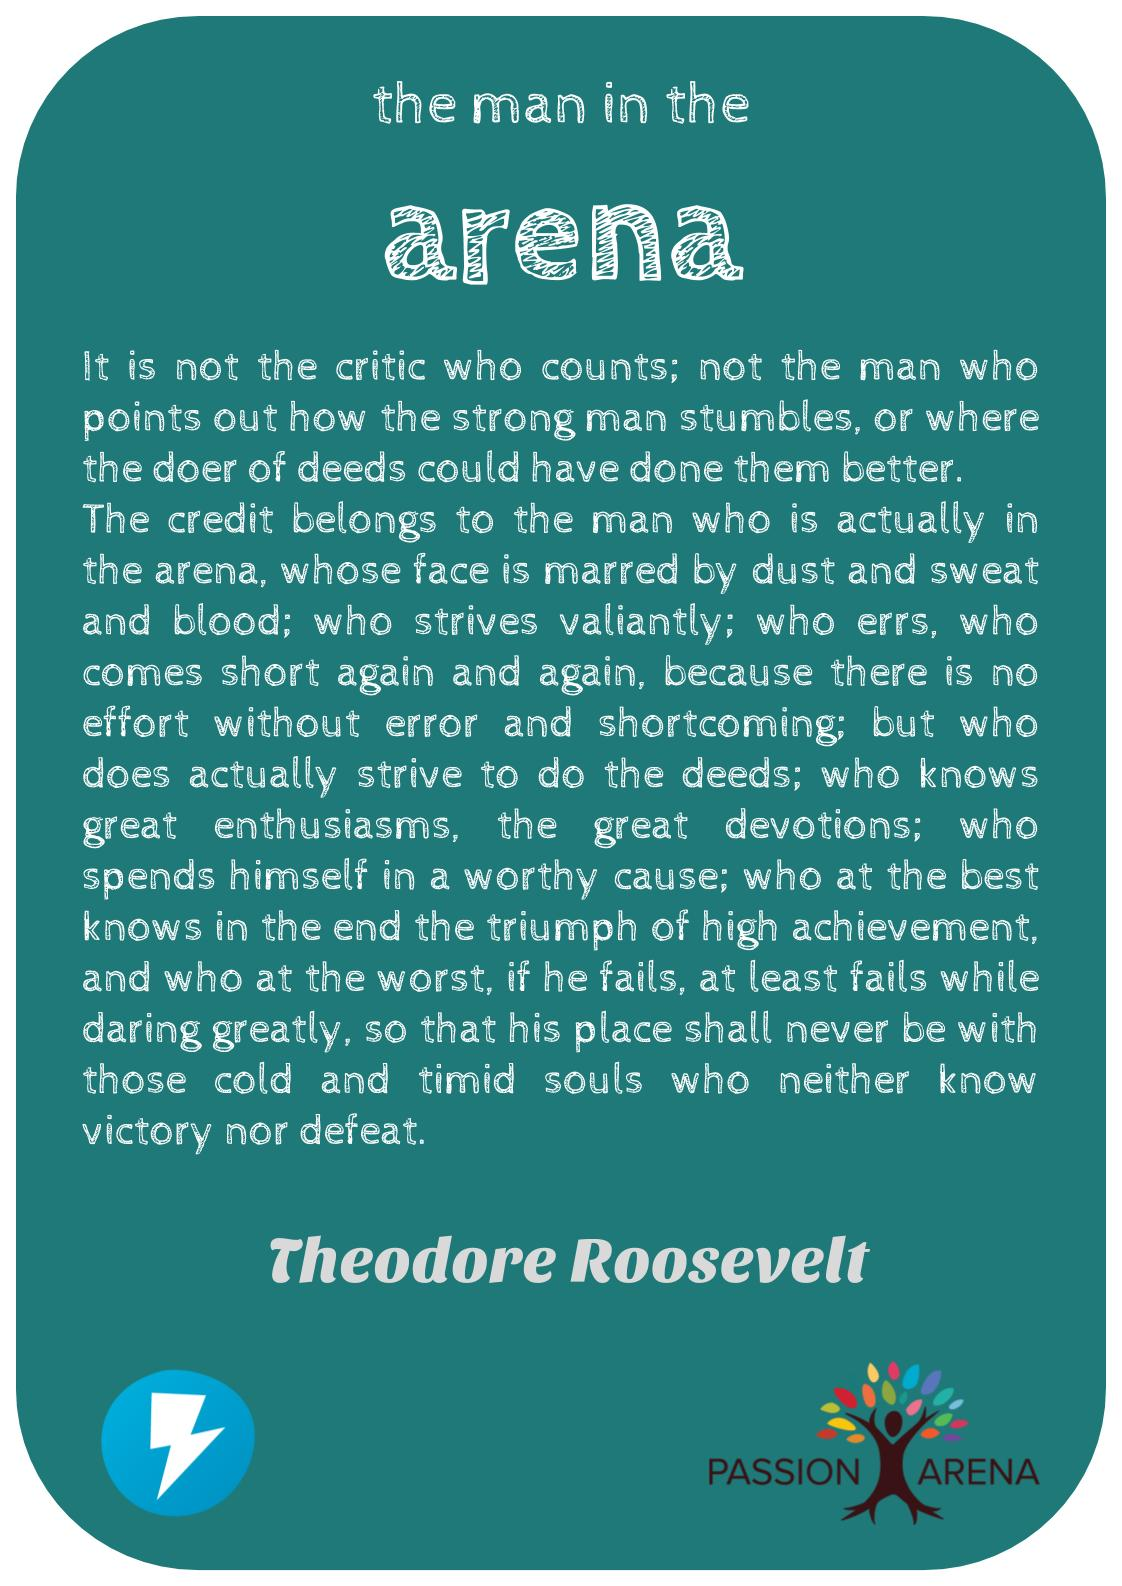 Theodore Roosevelt - 'The Man In The Arena' Quote